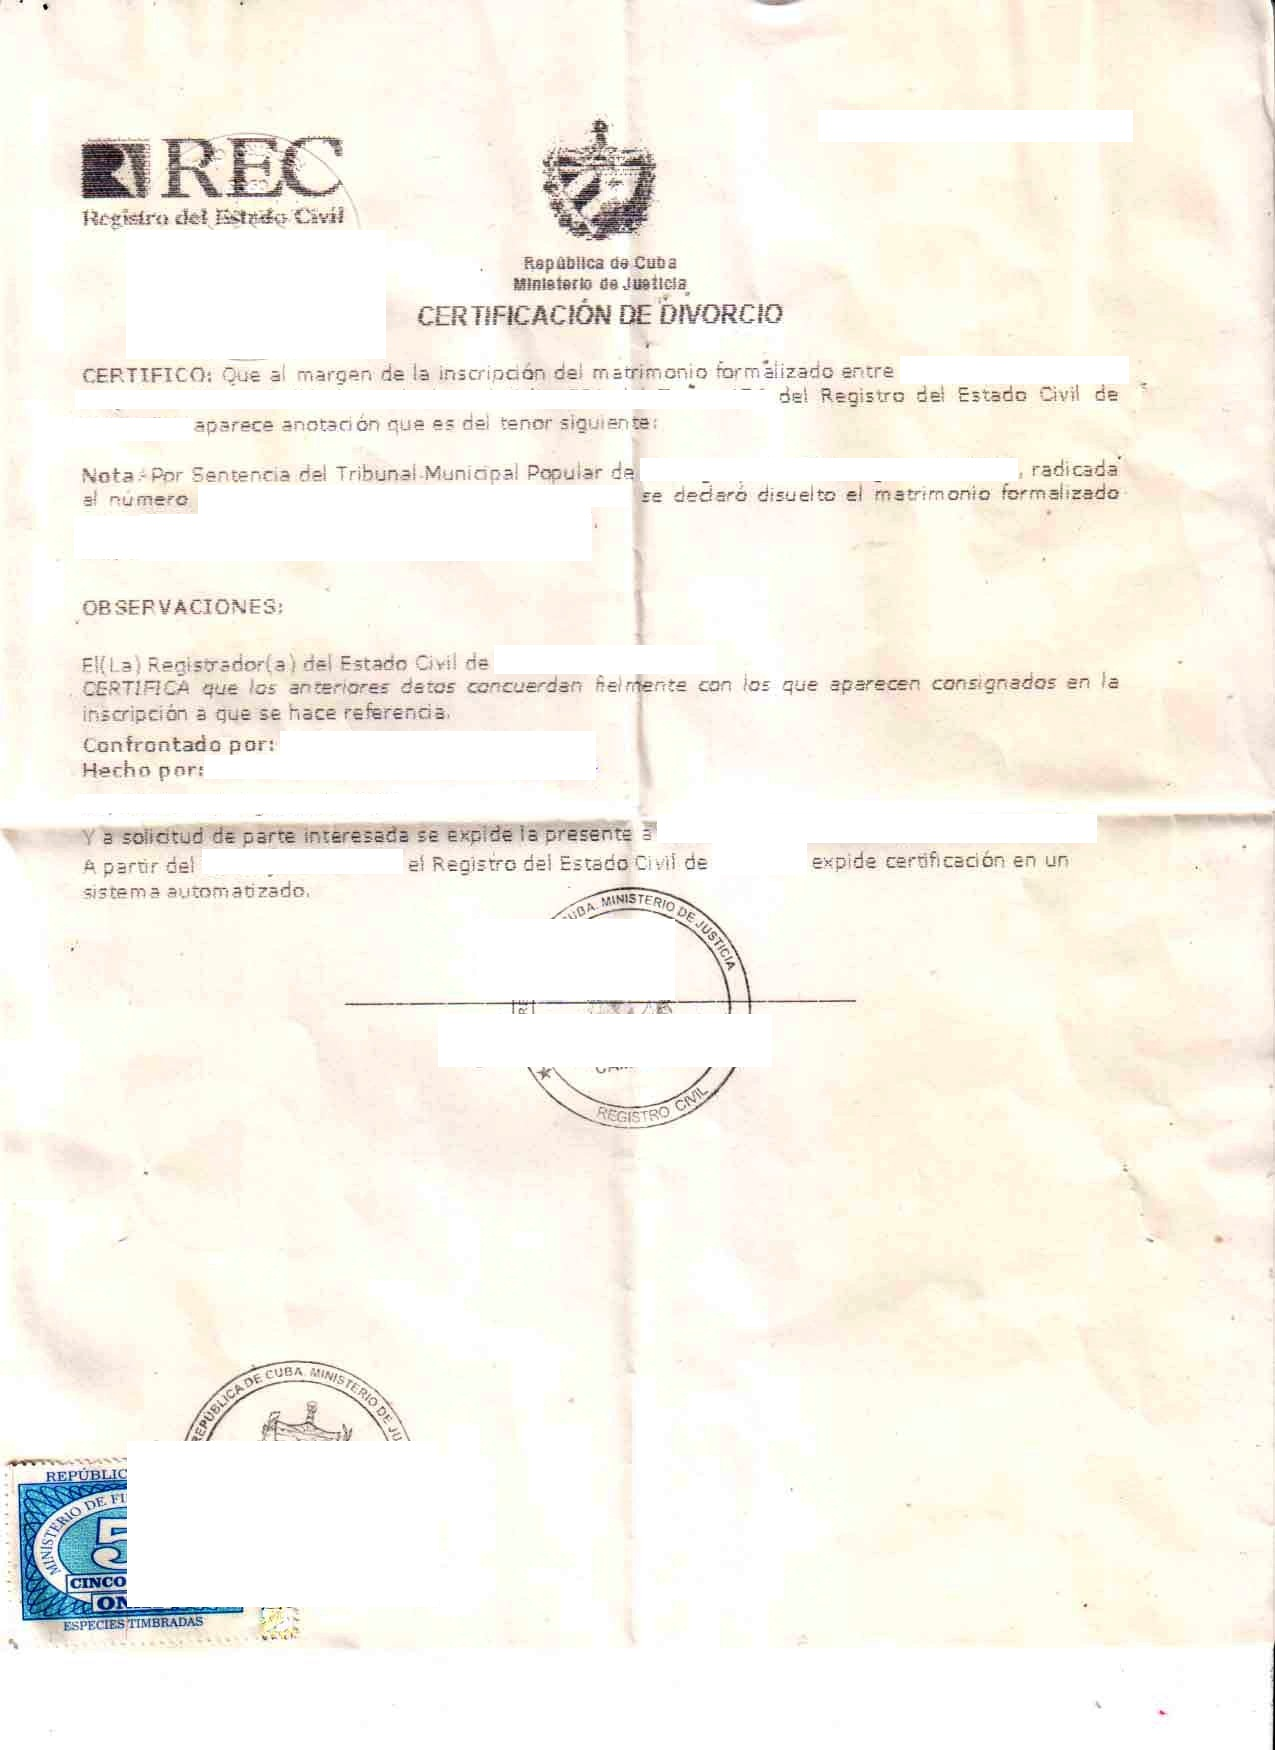 Cuban divorce certificate